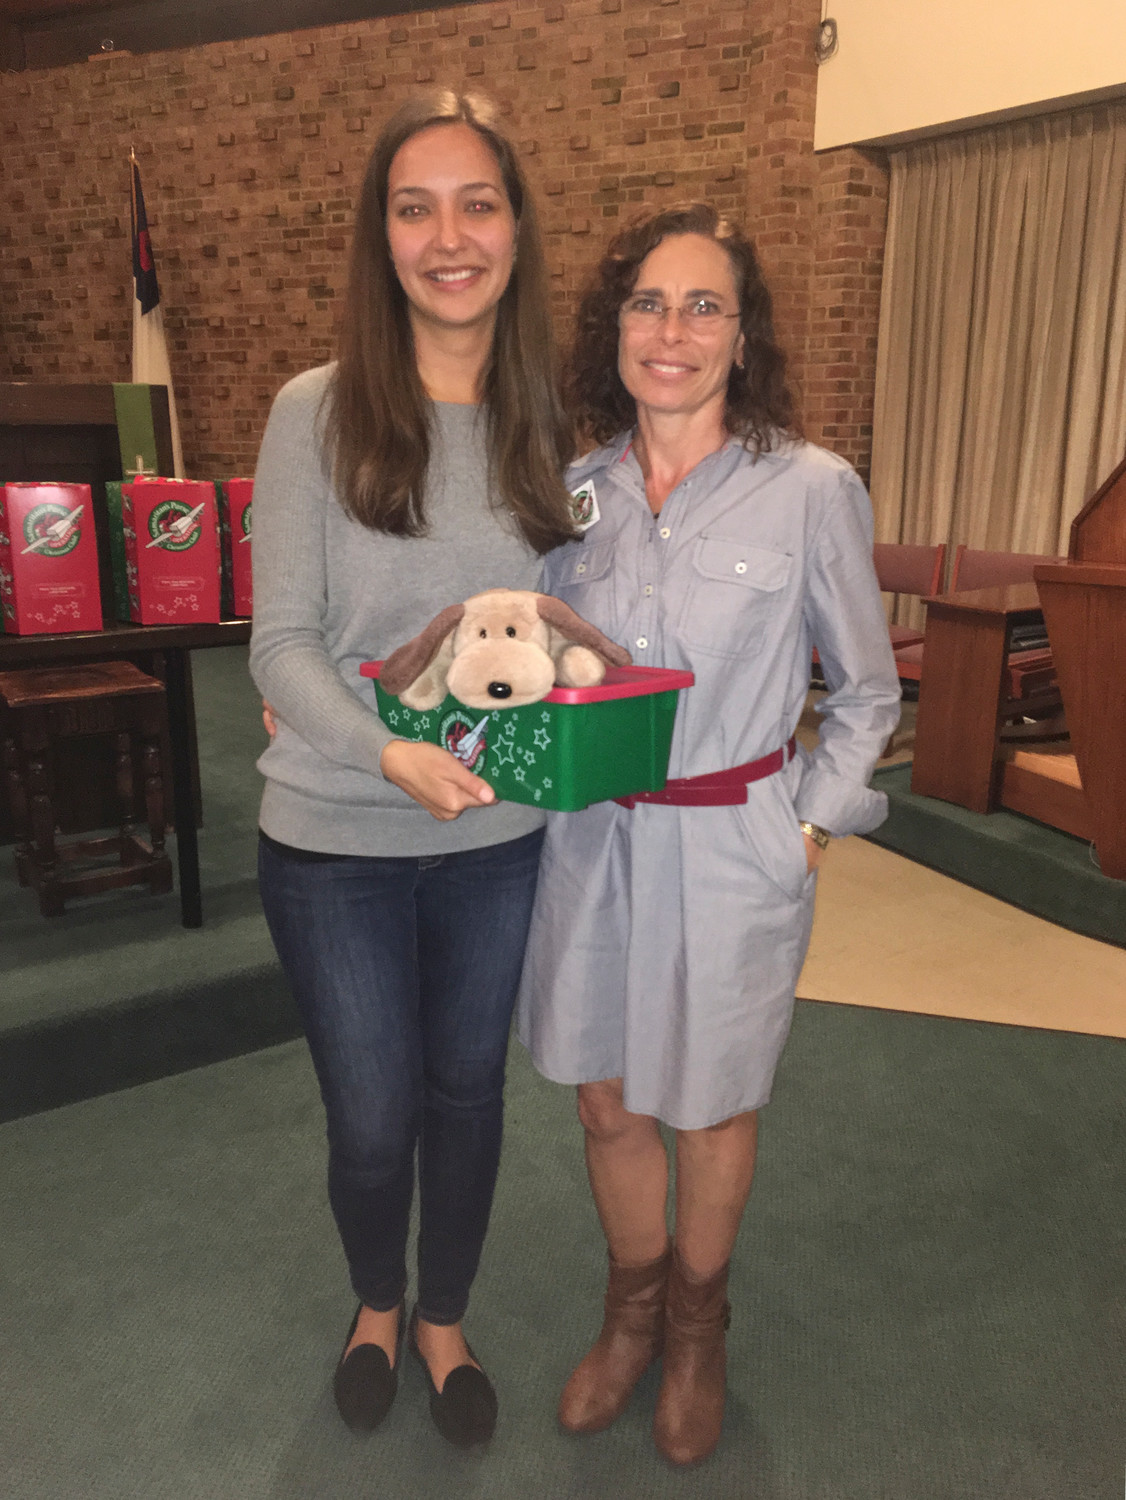 Yulia Shubina, left, and Bonnie Watkins pose with the shoebox Shubina received 16 years ago.